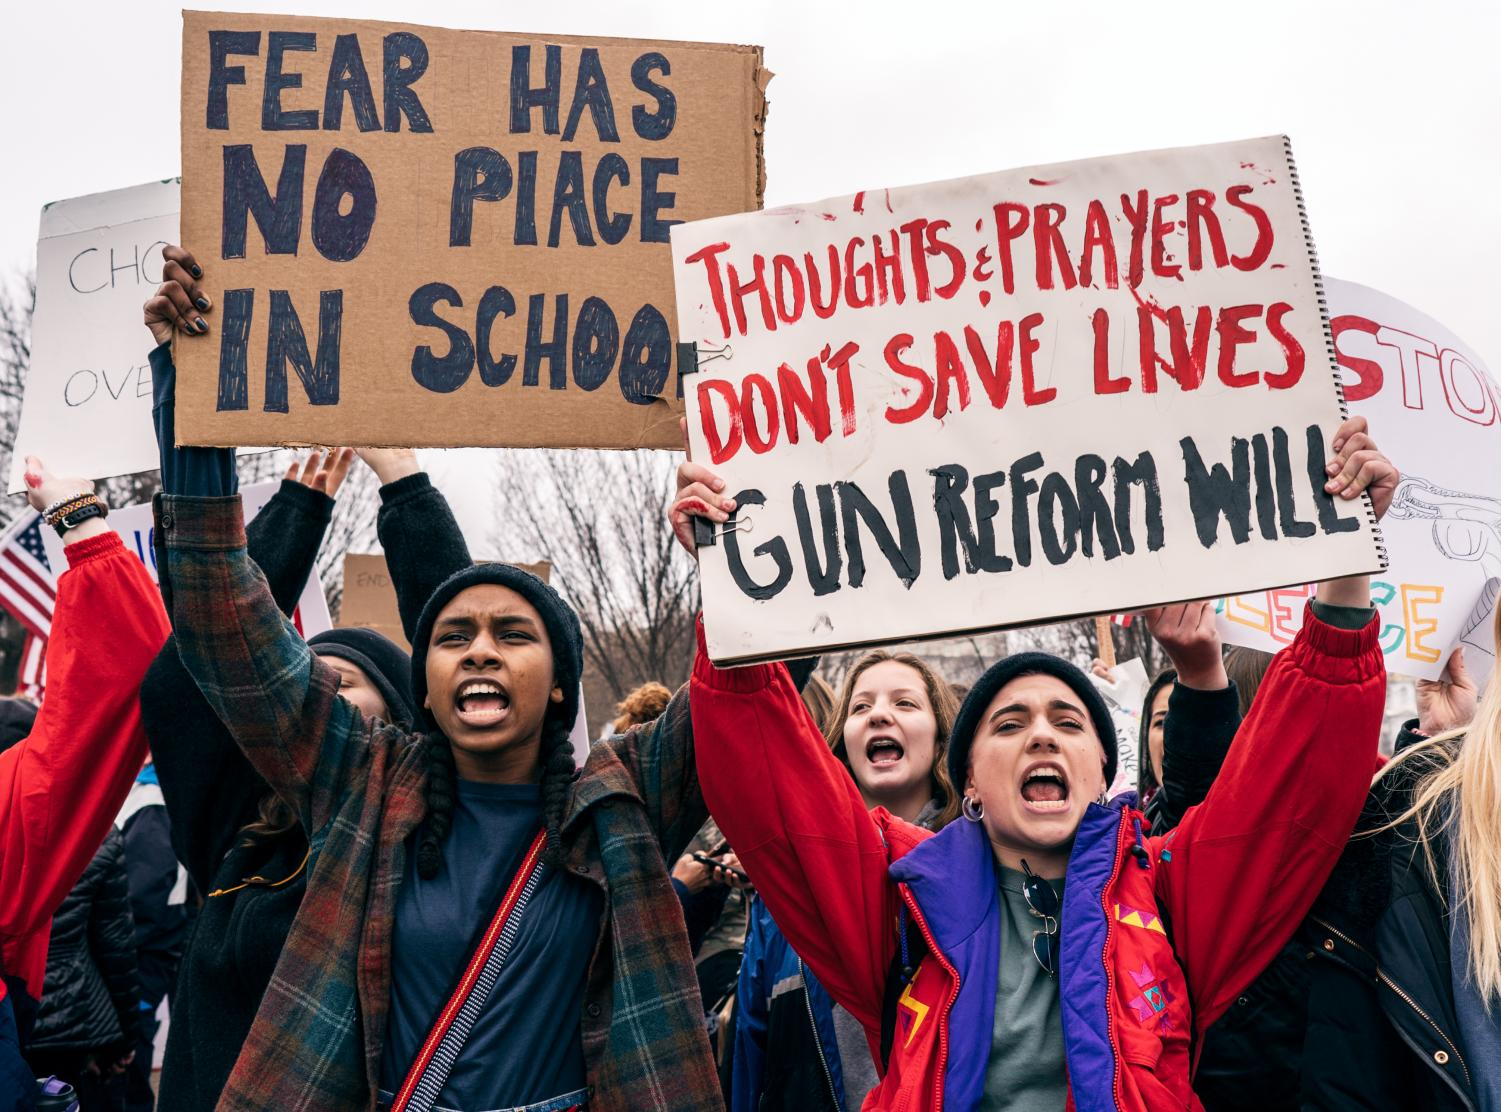 Student advocates for gun control rally in Washington, D.C. in response to mass shootings in American schools.